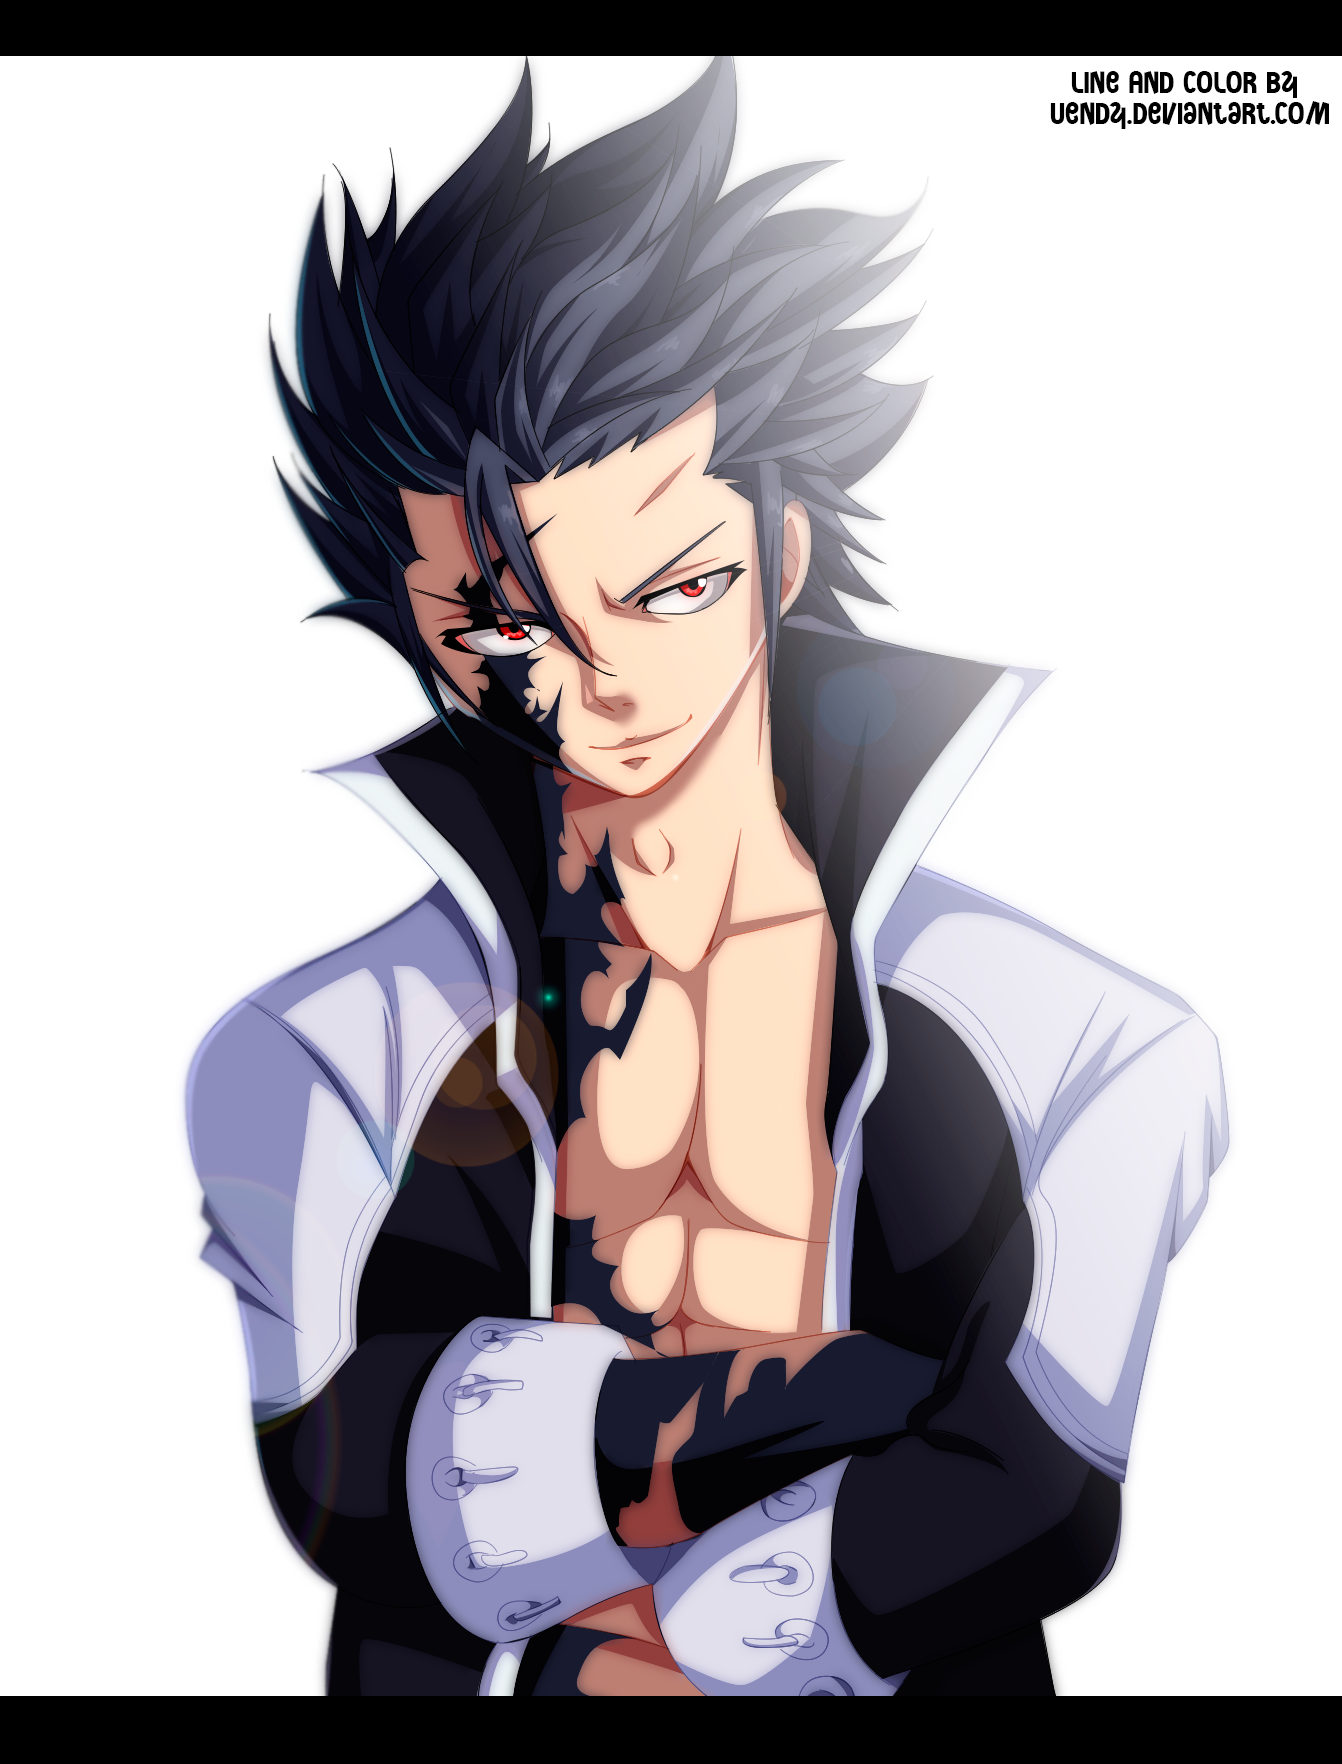 fairy_tail_426___gray_fullbuster_by_uend